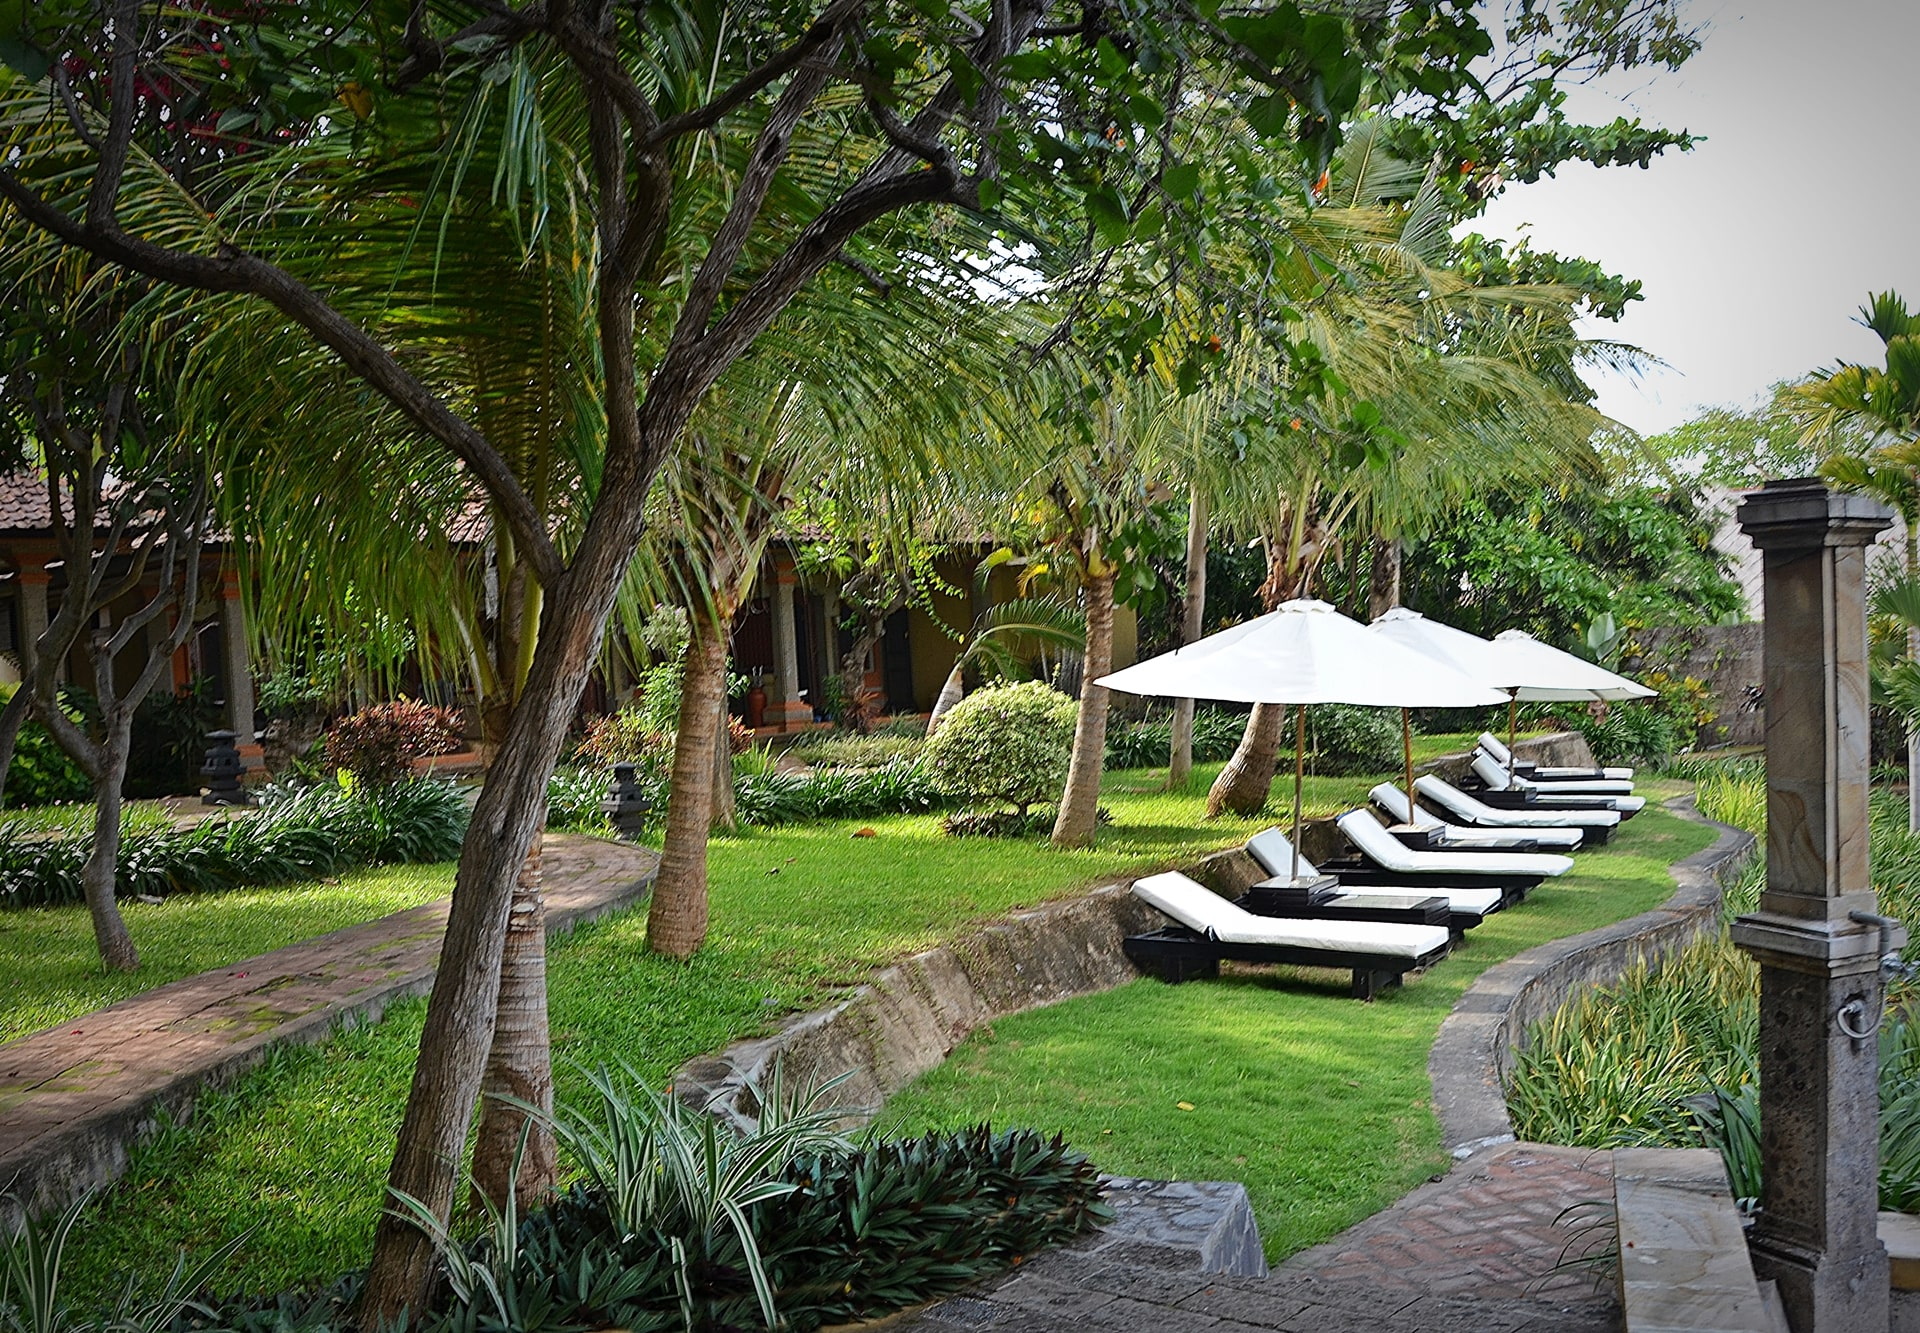 3 Nights 4 Days Zen Ayurveda-Yoga Relaxation Retreat in Bali